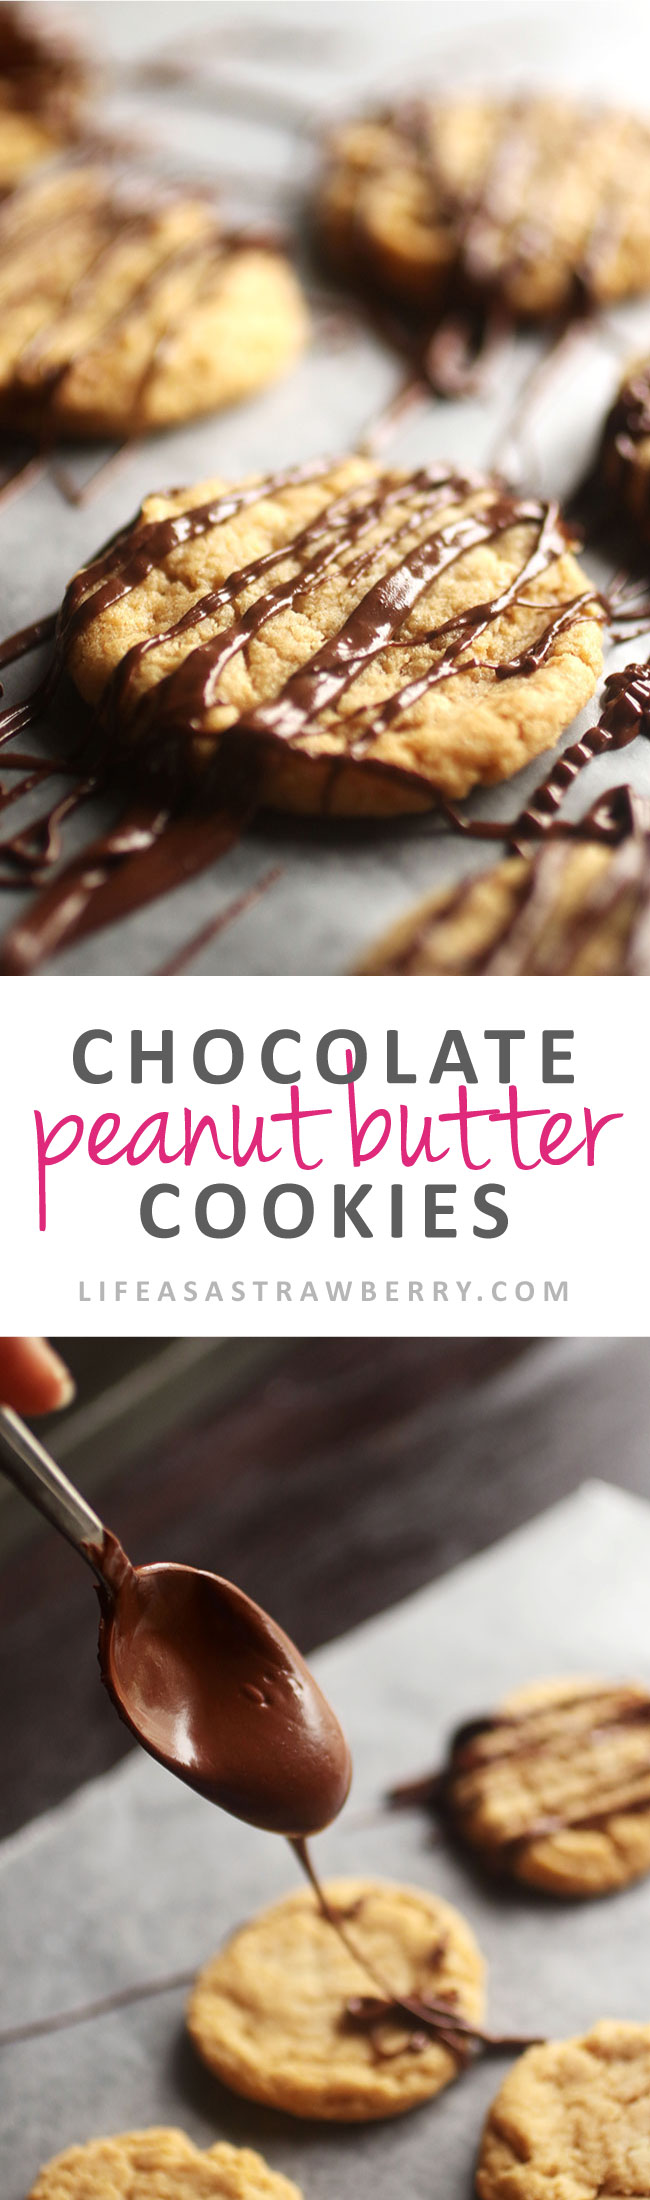 Chocolate Covered Peanut Butter Cookies | This easy peanut butter cookie recipe is perfect for holiday baking. Serve them as salted chocolate cookies or serve with plain chocolate drizzle for a simple, soft, chewy cookie. Vegetarian. Use for homemade Christmas Cookies Recipes (or from scratch cookies any time of the year!) | lifeasastrawberry.com